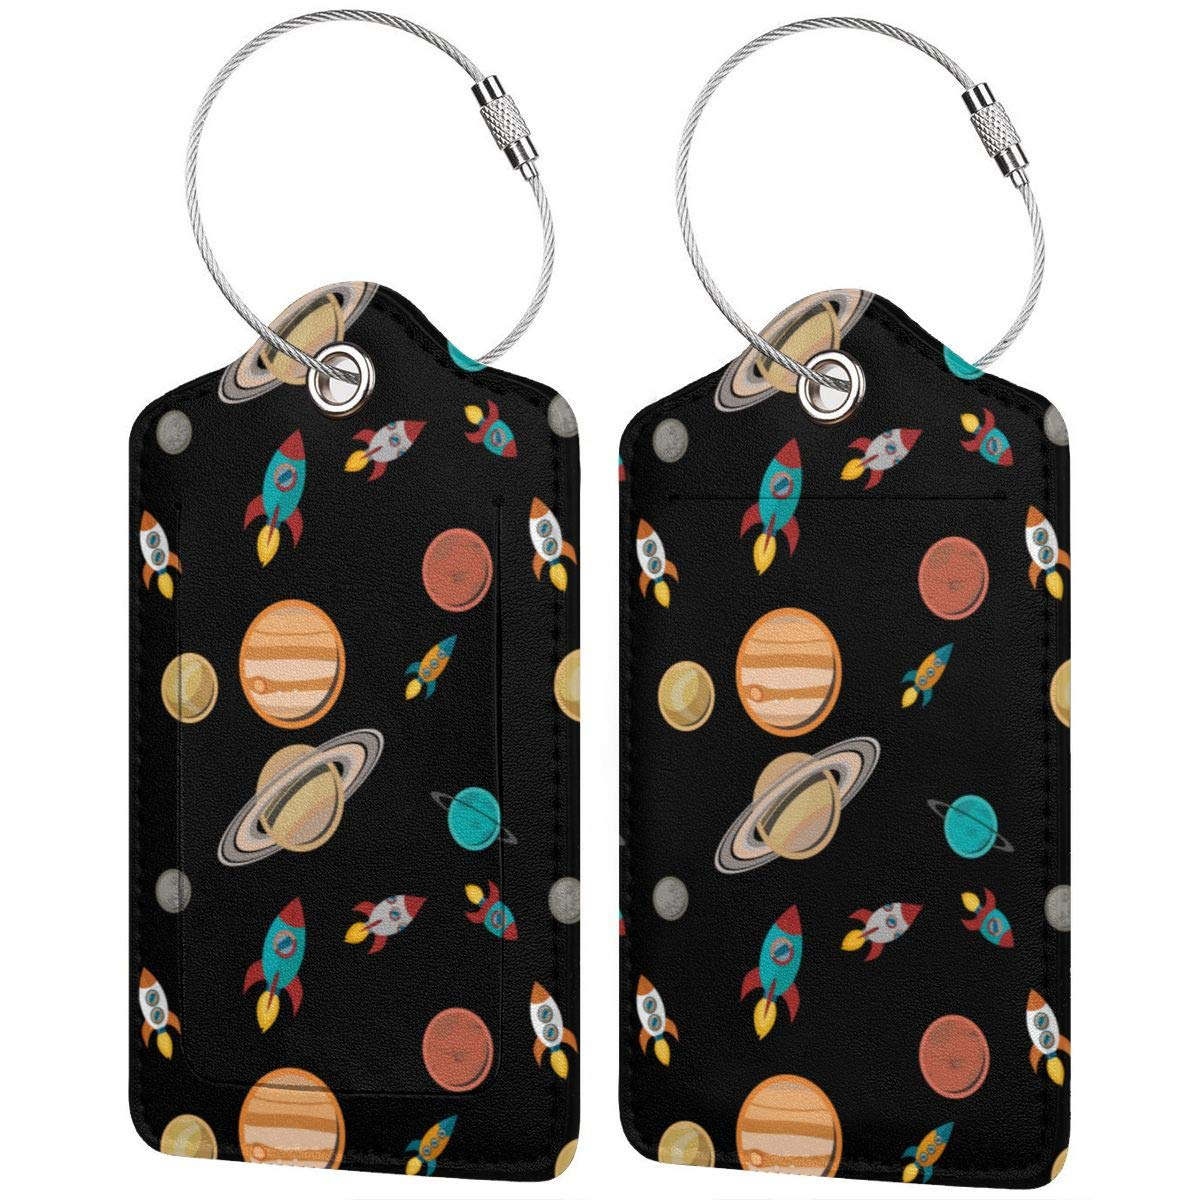 GoldK Space Planet Leather Luggage Tags Baggage Bag Instrument Tag Travel Labels Accessories with Privacy Cover